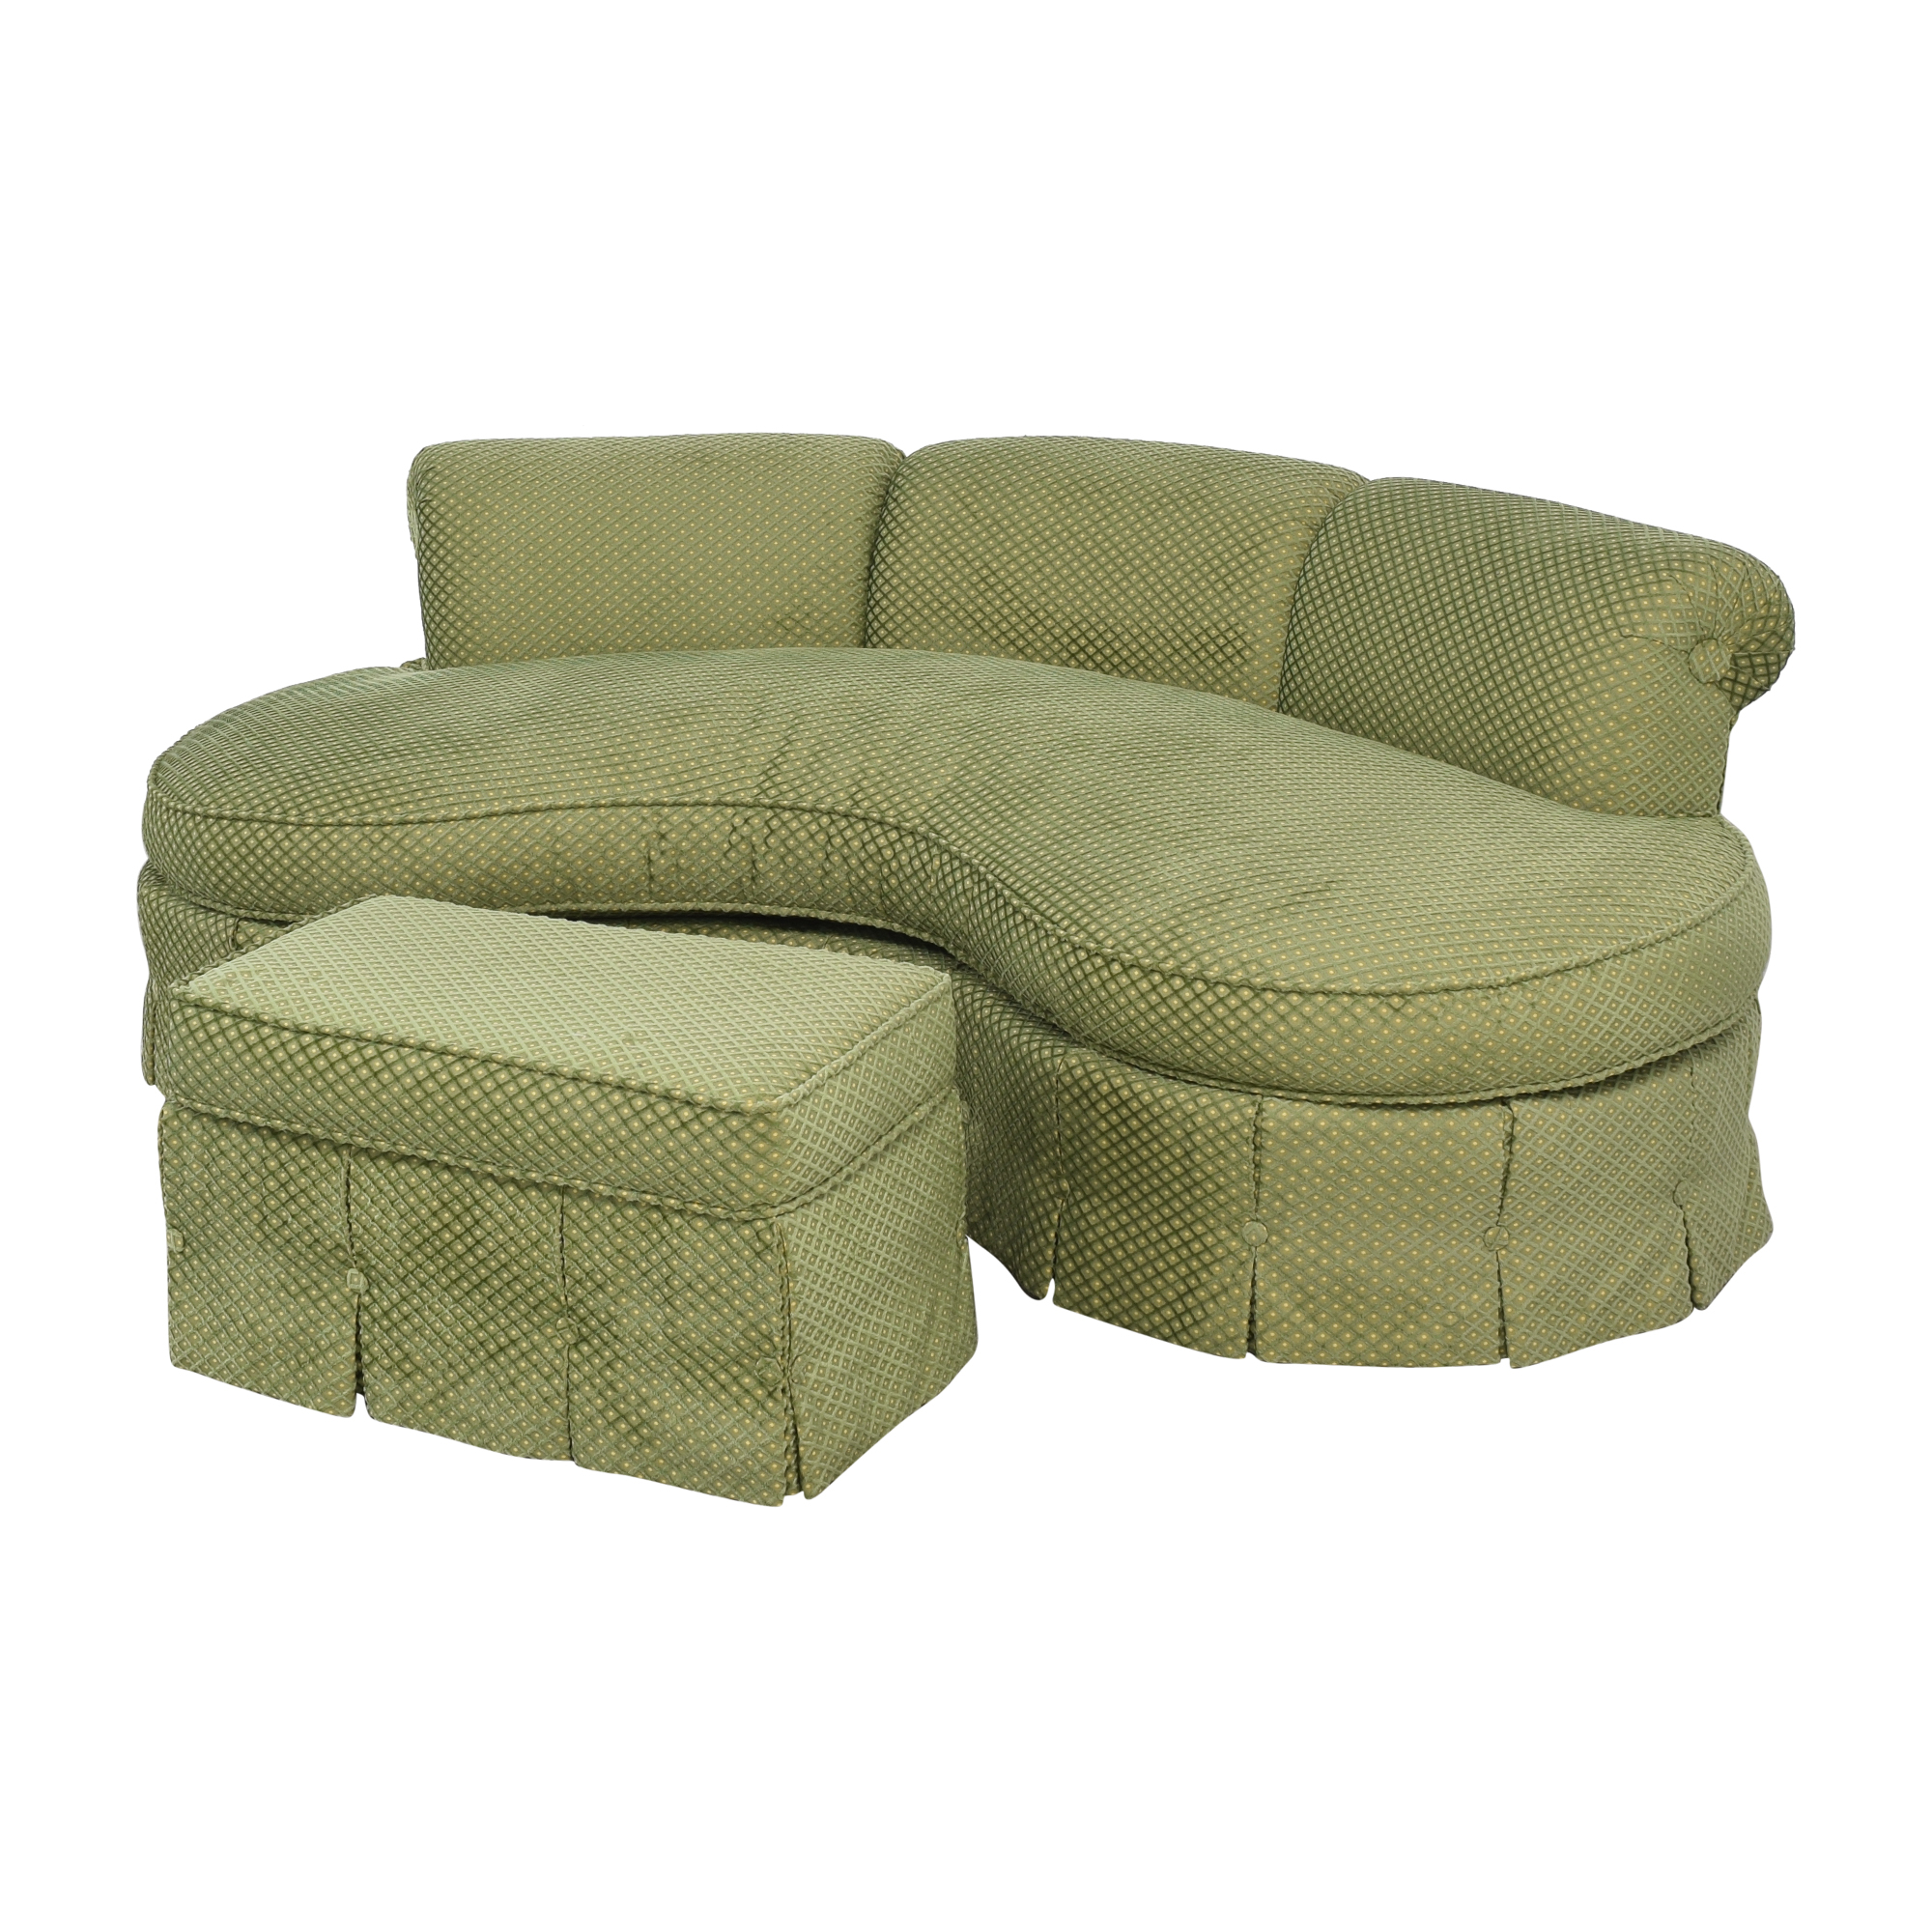 Custom Curved Sofa with Skirted Base and Matching Ottoman on sale